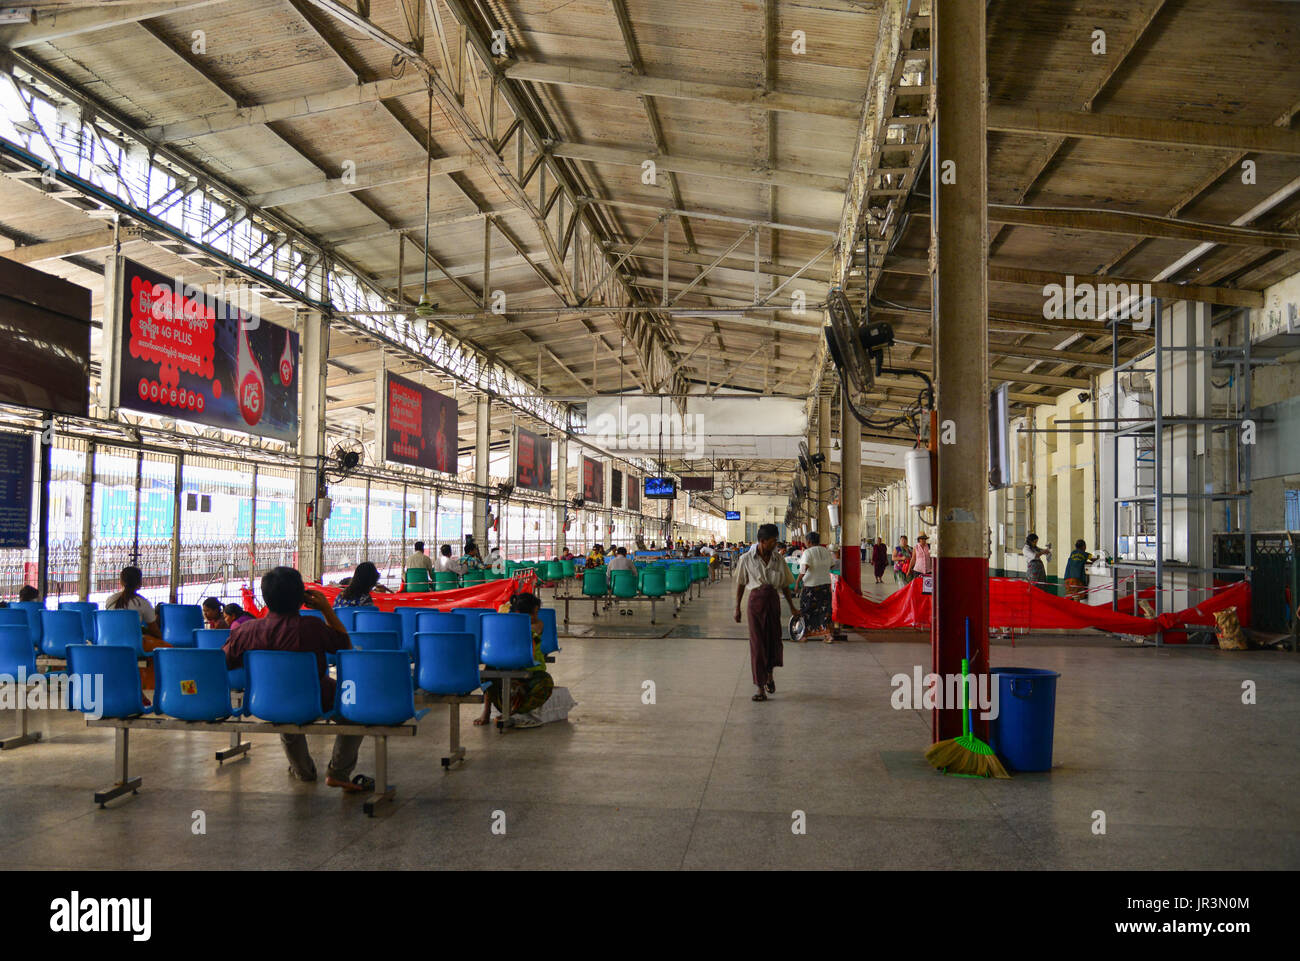 Yangon, Myanmar - Feb 13, 2017. People at waiting room of the Central Railway Station in Yangon, Myanmar. Yangon Stock Photo